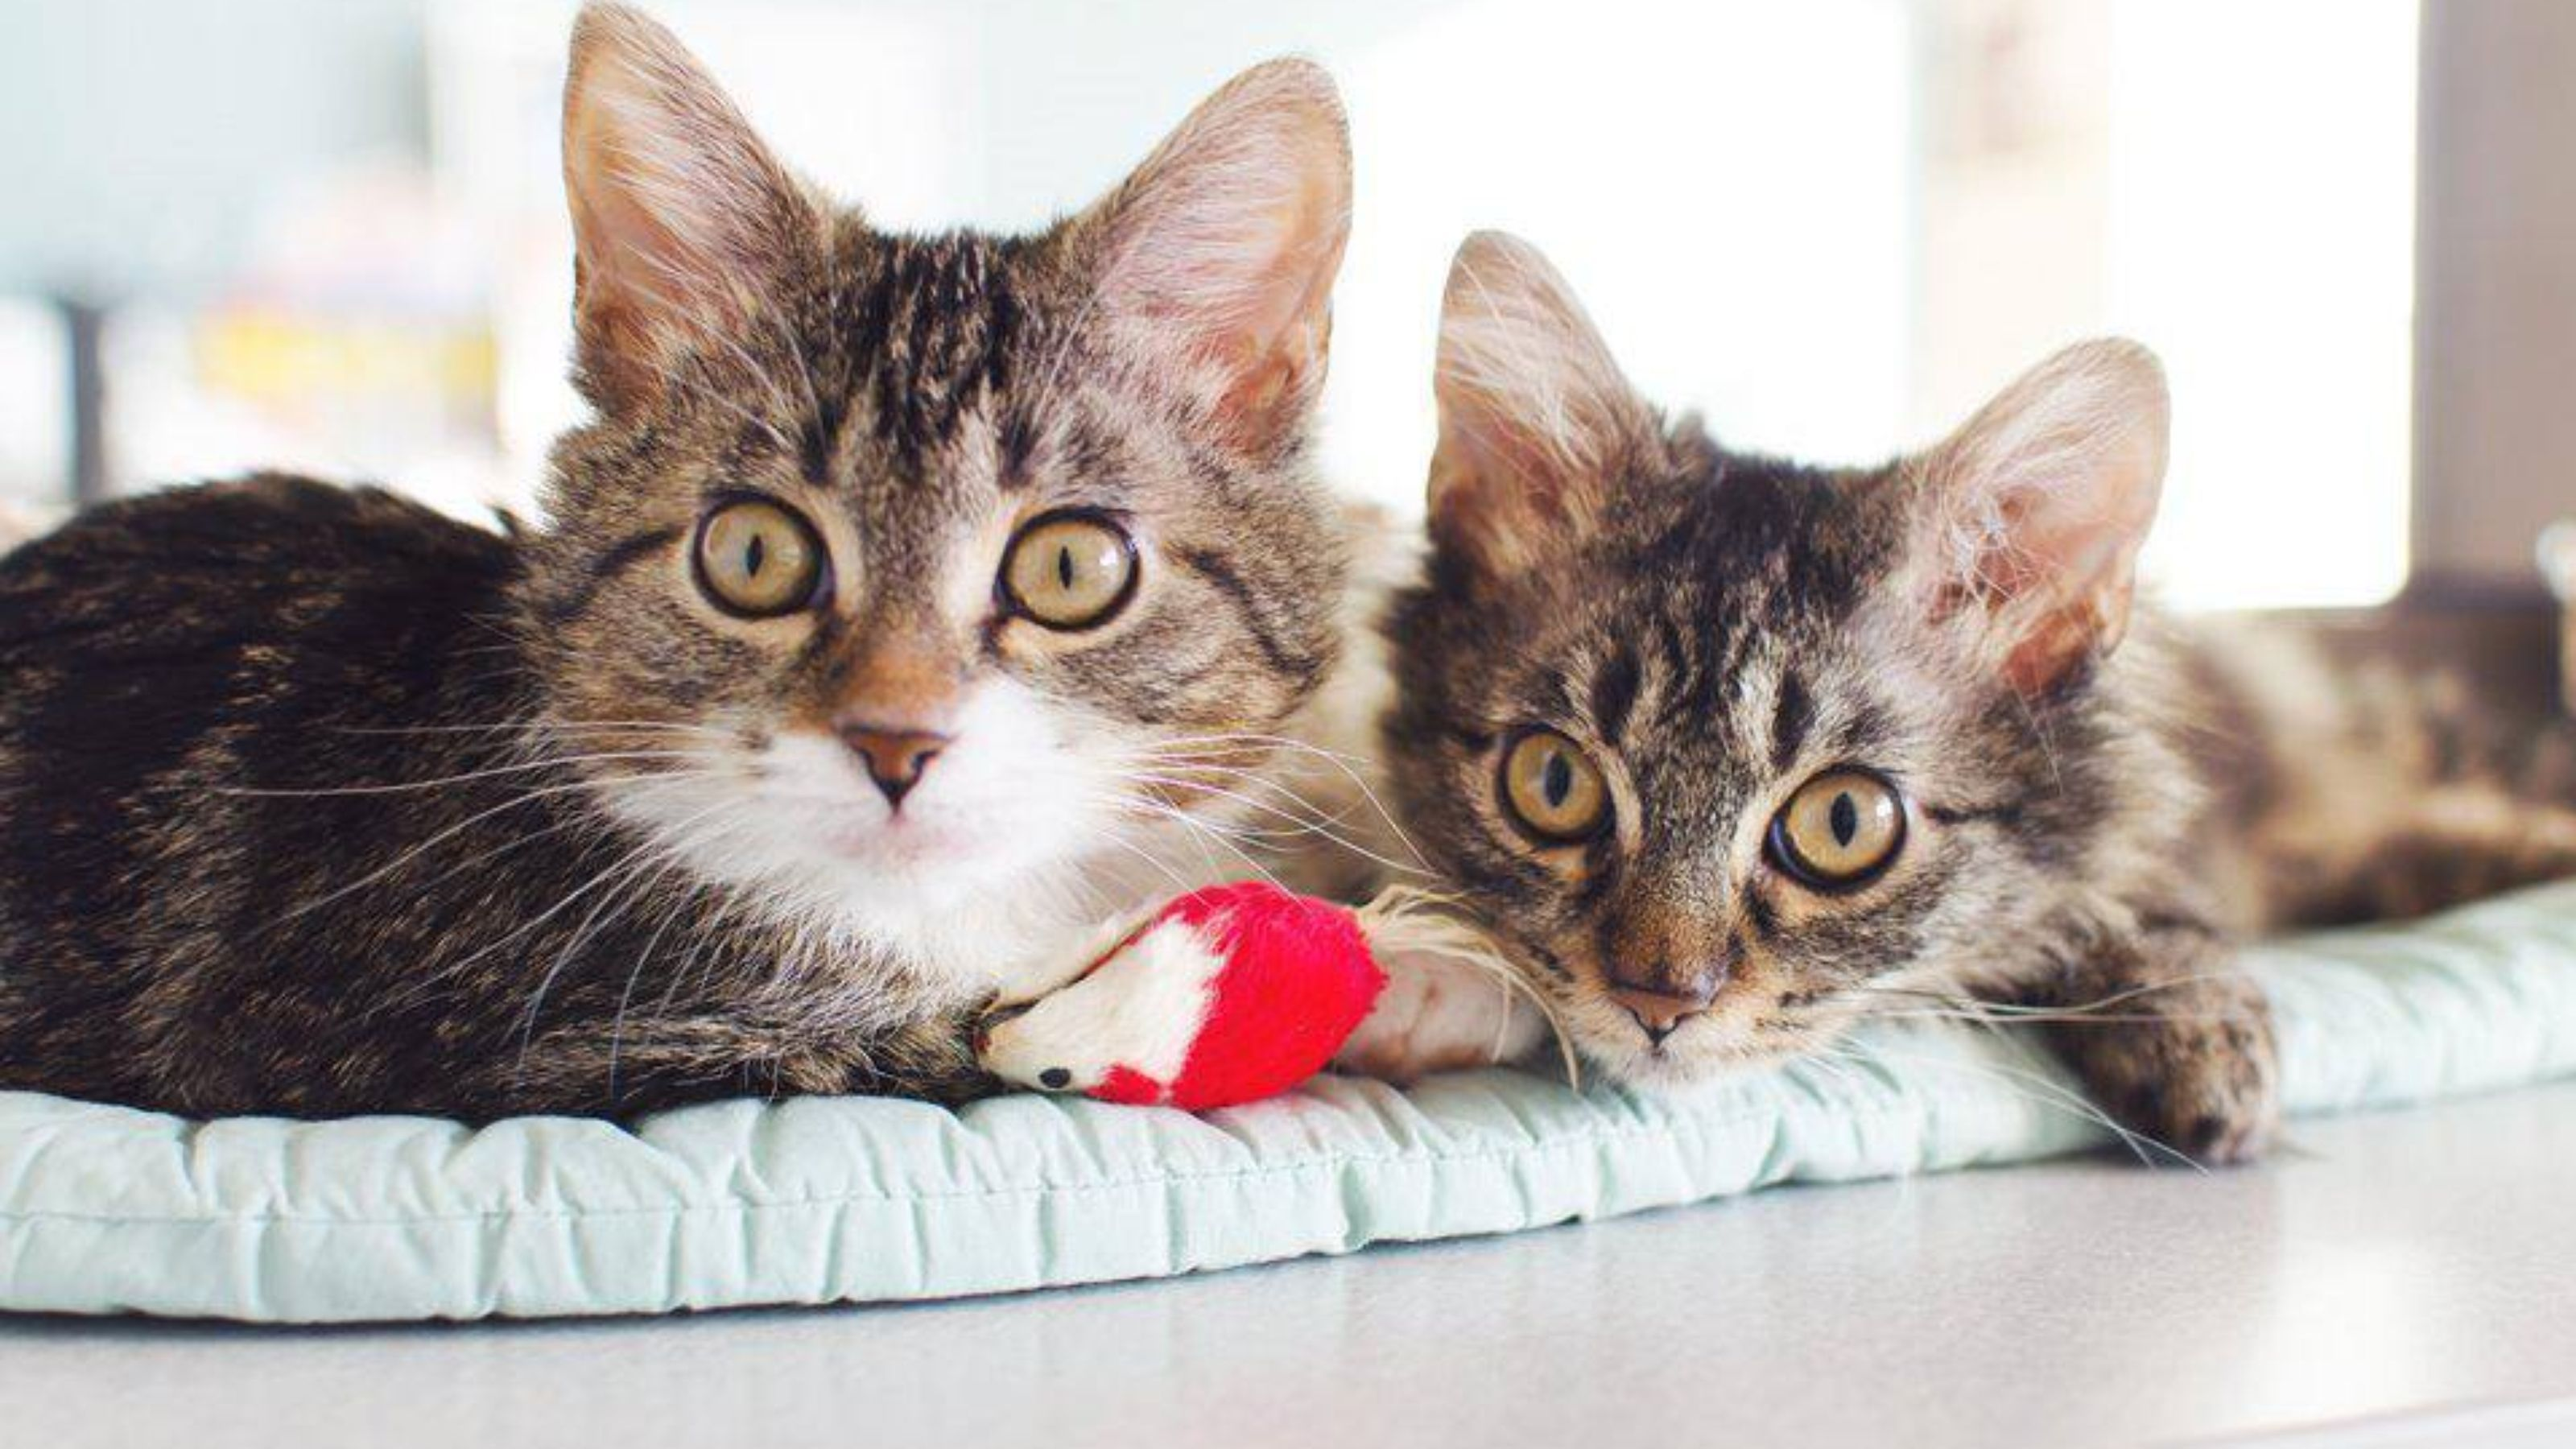 A Seattle cat rescue group has a couple of unique kittens